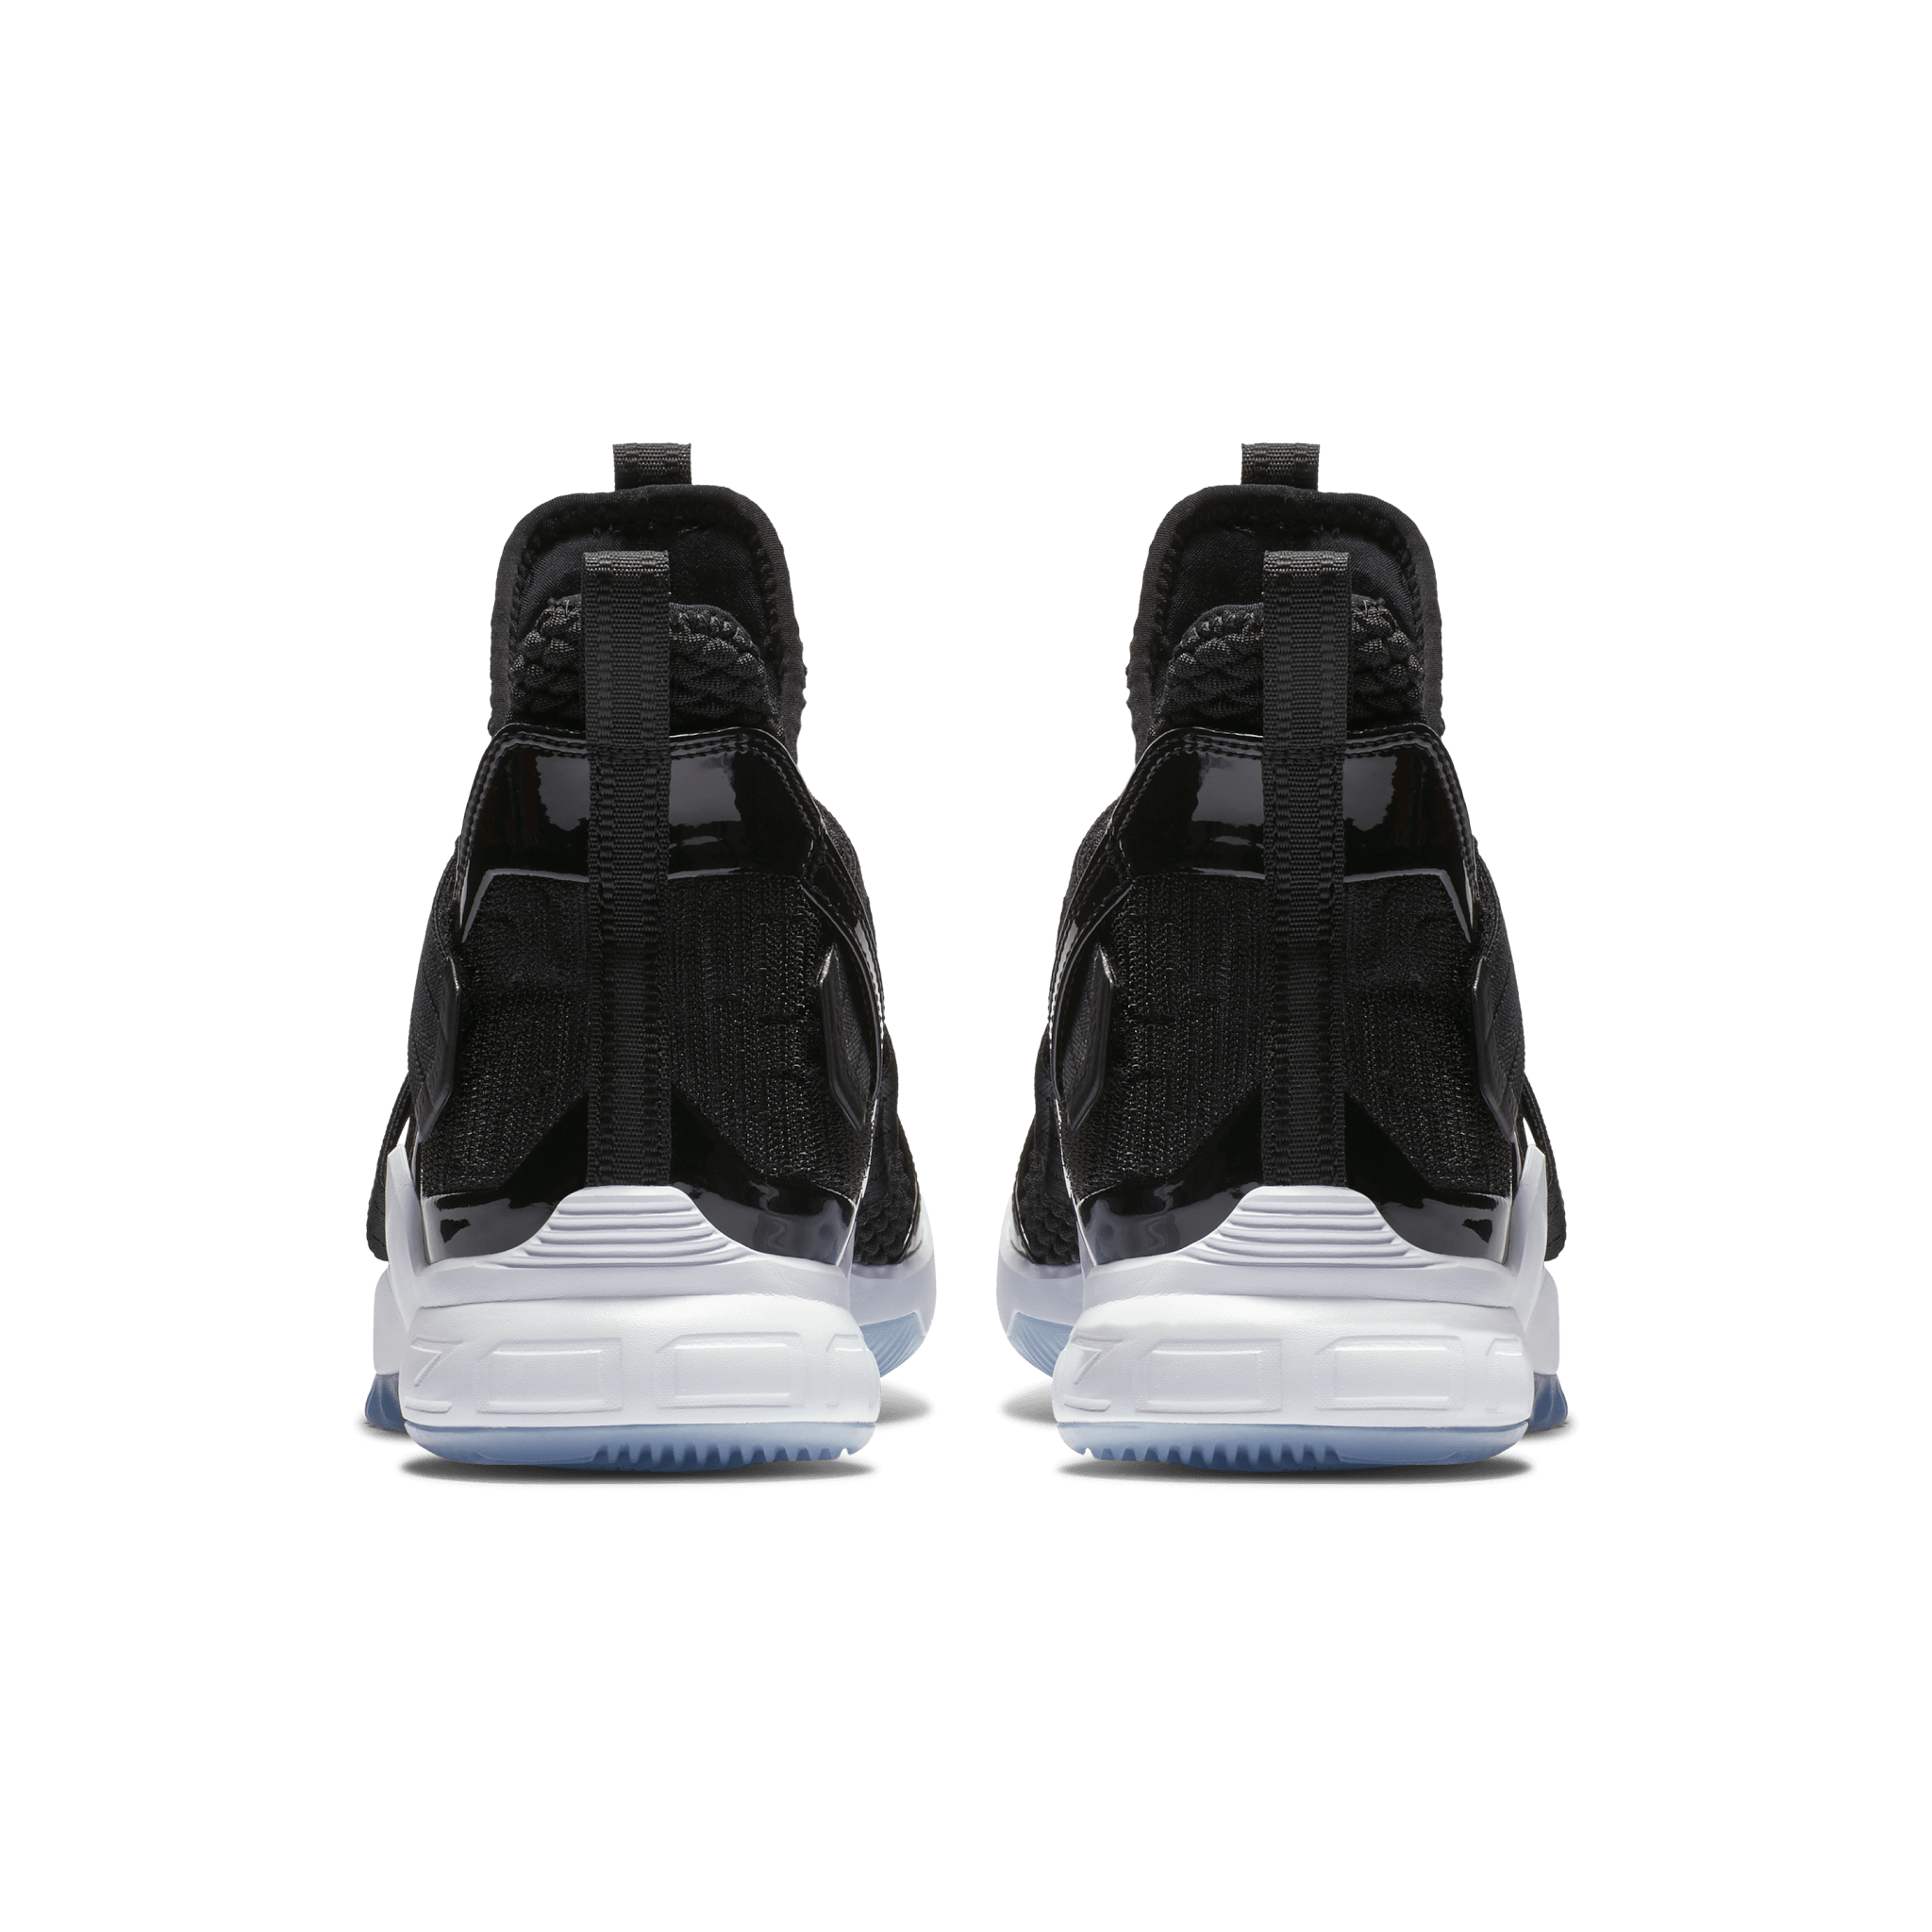 b702d1bd34f0 Nike Lebron Soldier 12 Performance Review